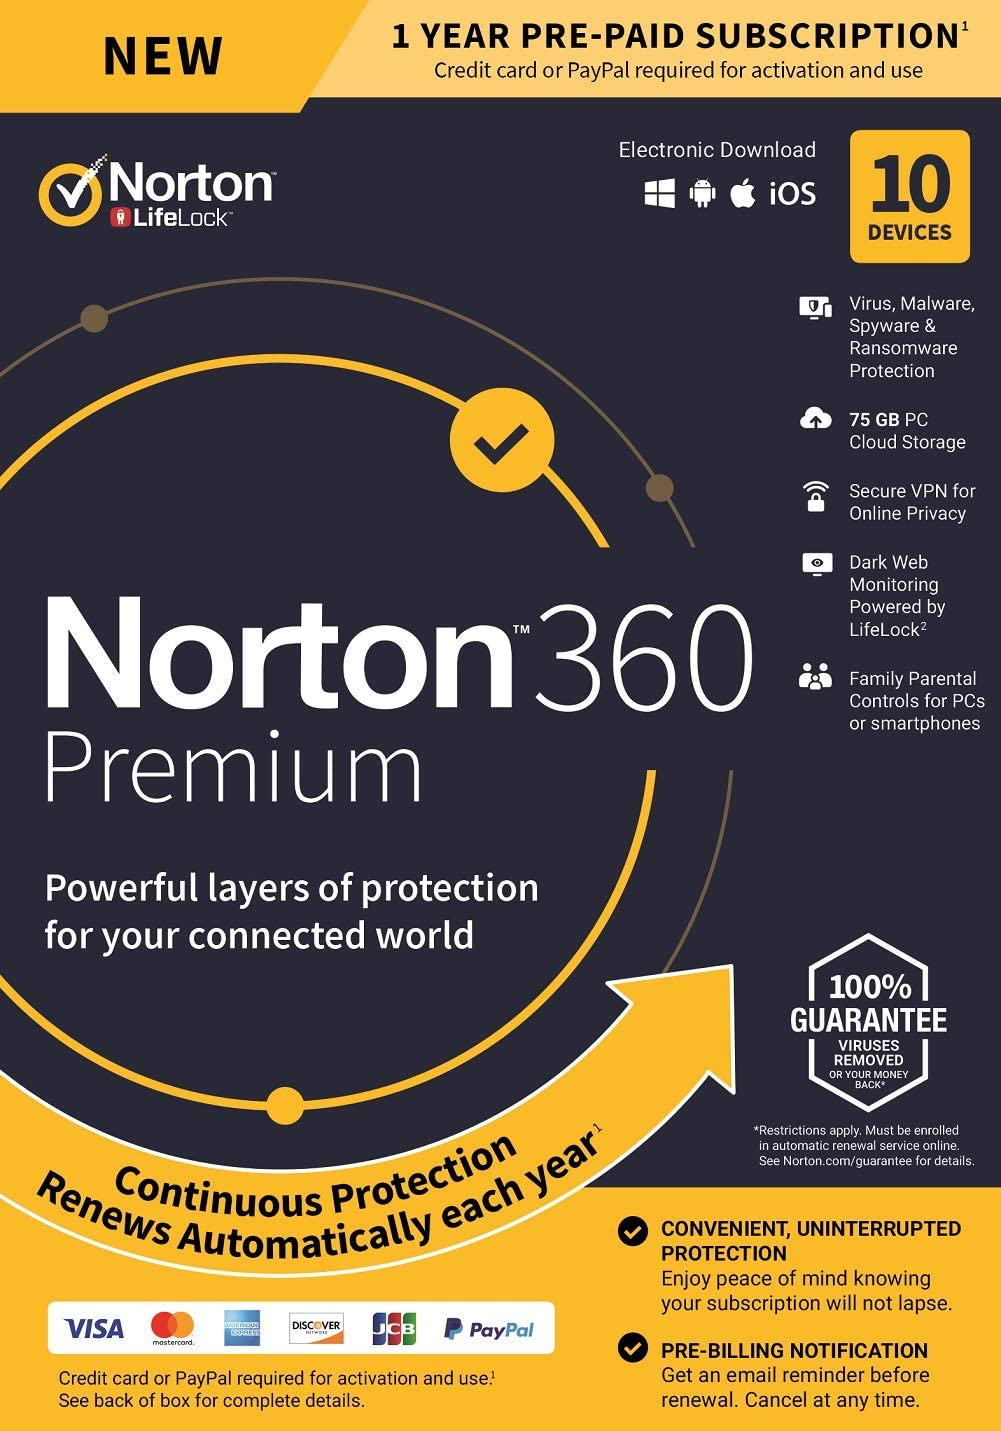 Norton 360 Premium – Antivirus Software for 10 Devices with Auto Renewal - Includes VPN, PC Cloud Backup & Dark Web Monitoring powered by LifeLock - 2020 Ready [Key card] 71dcaHhbgEL